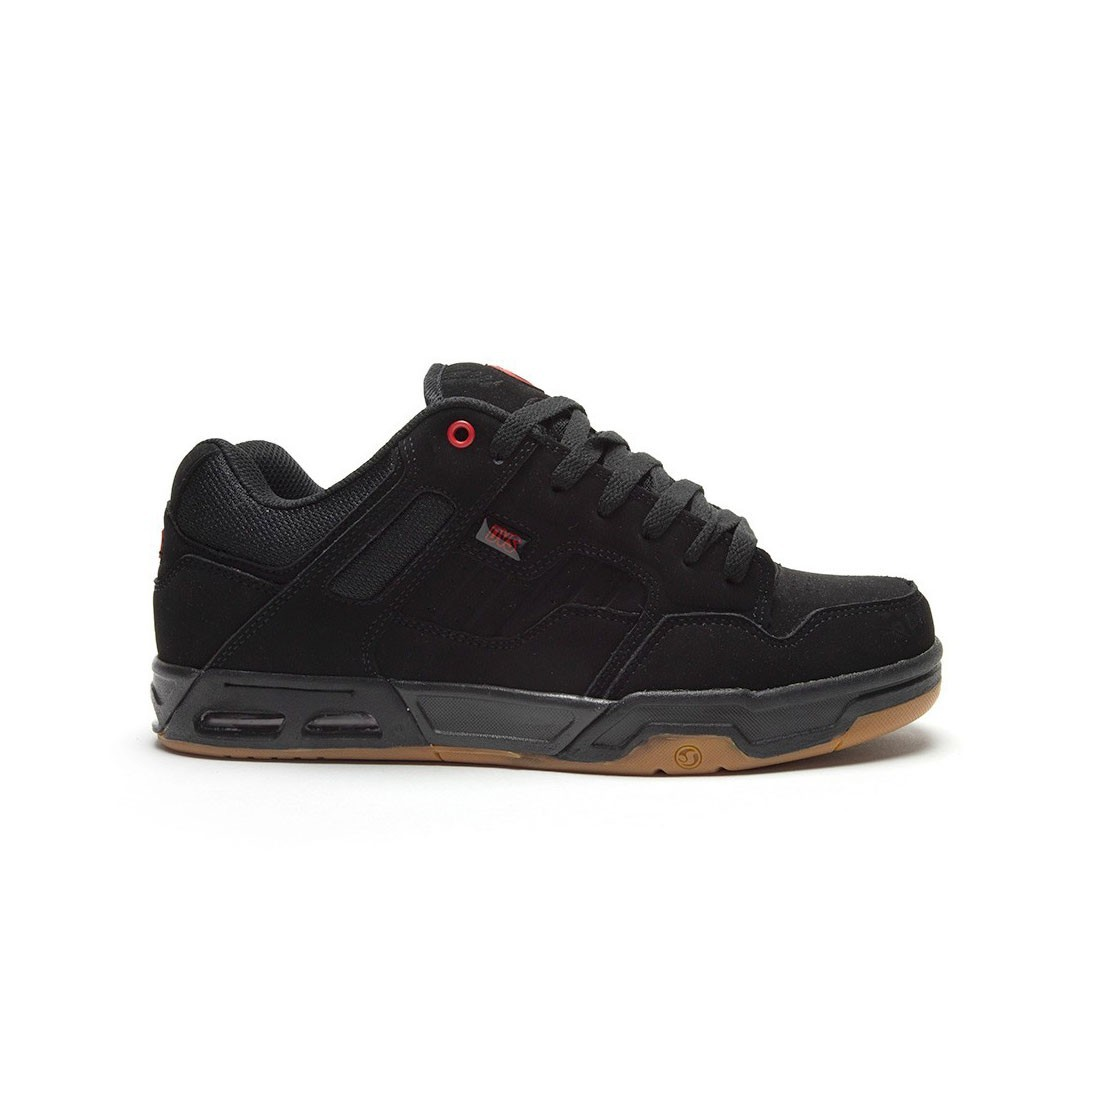 ENDURO HEIR black red gum